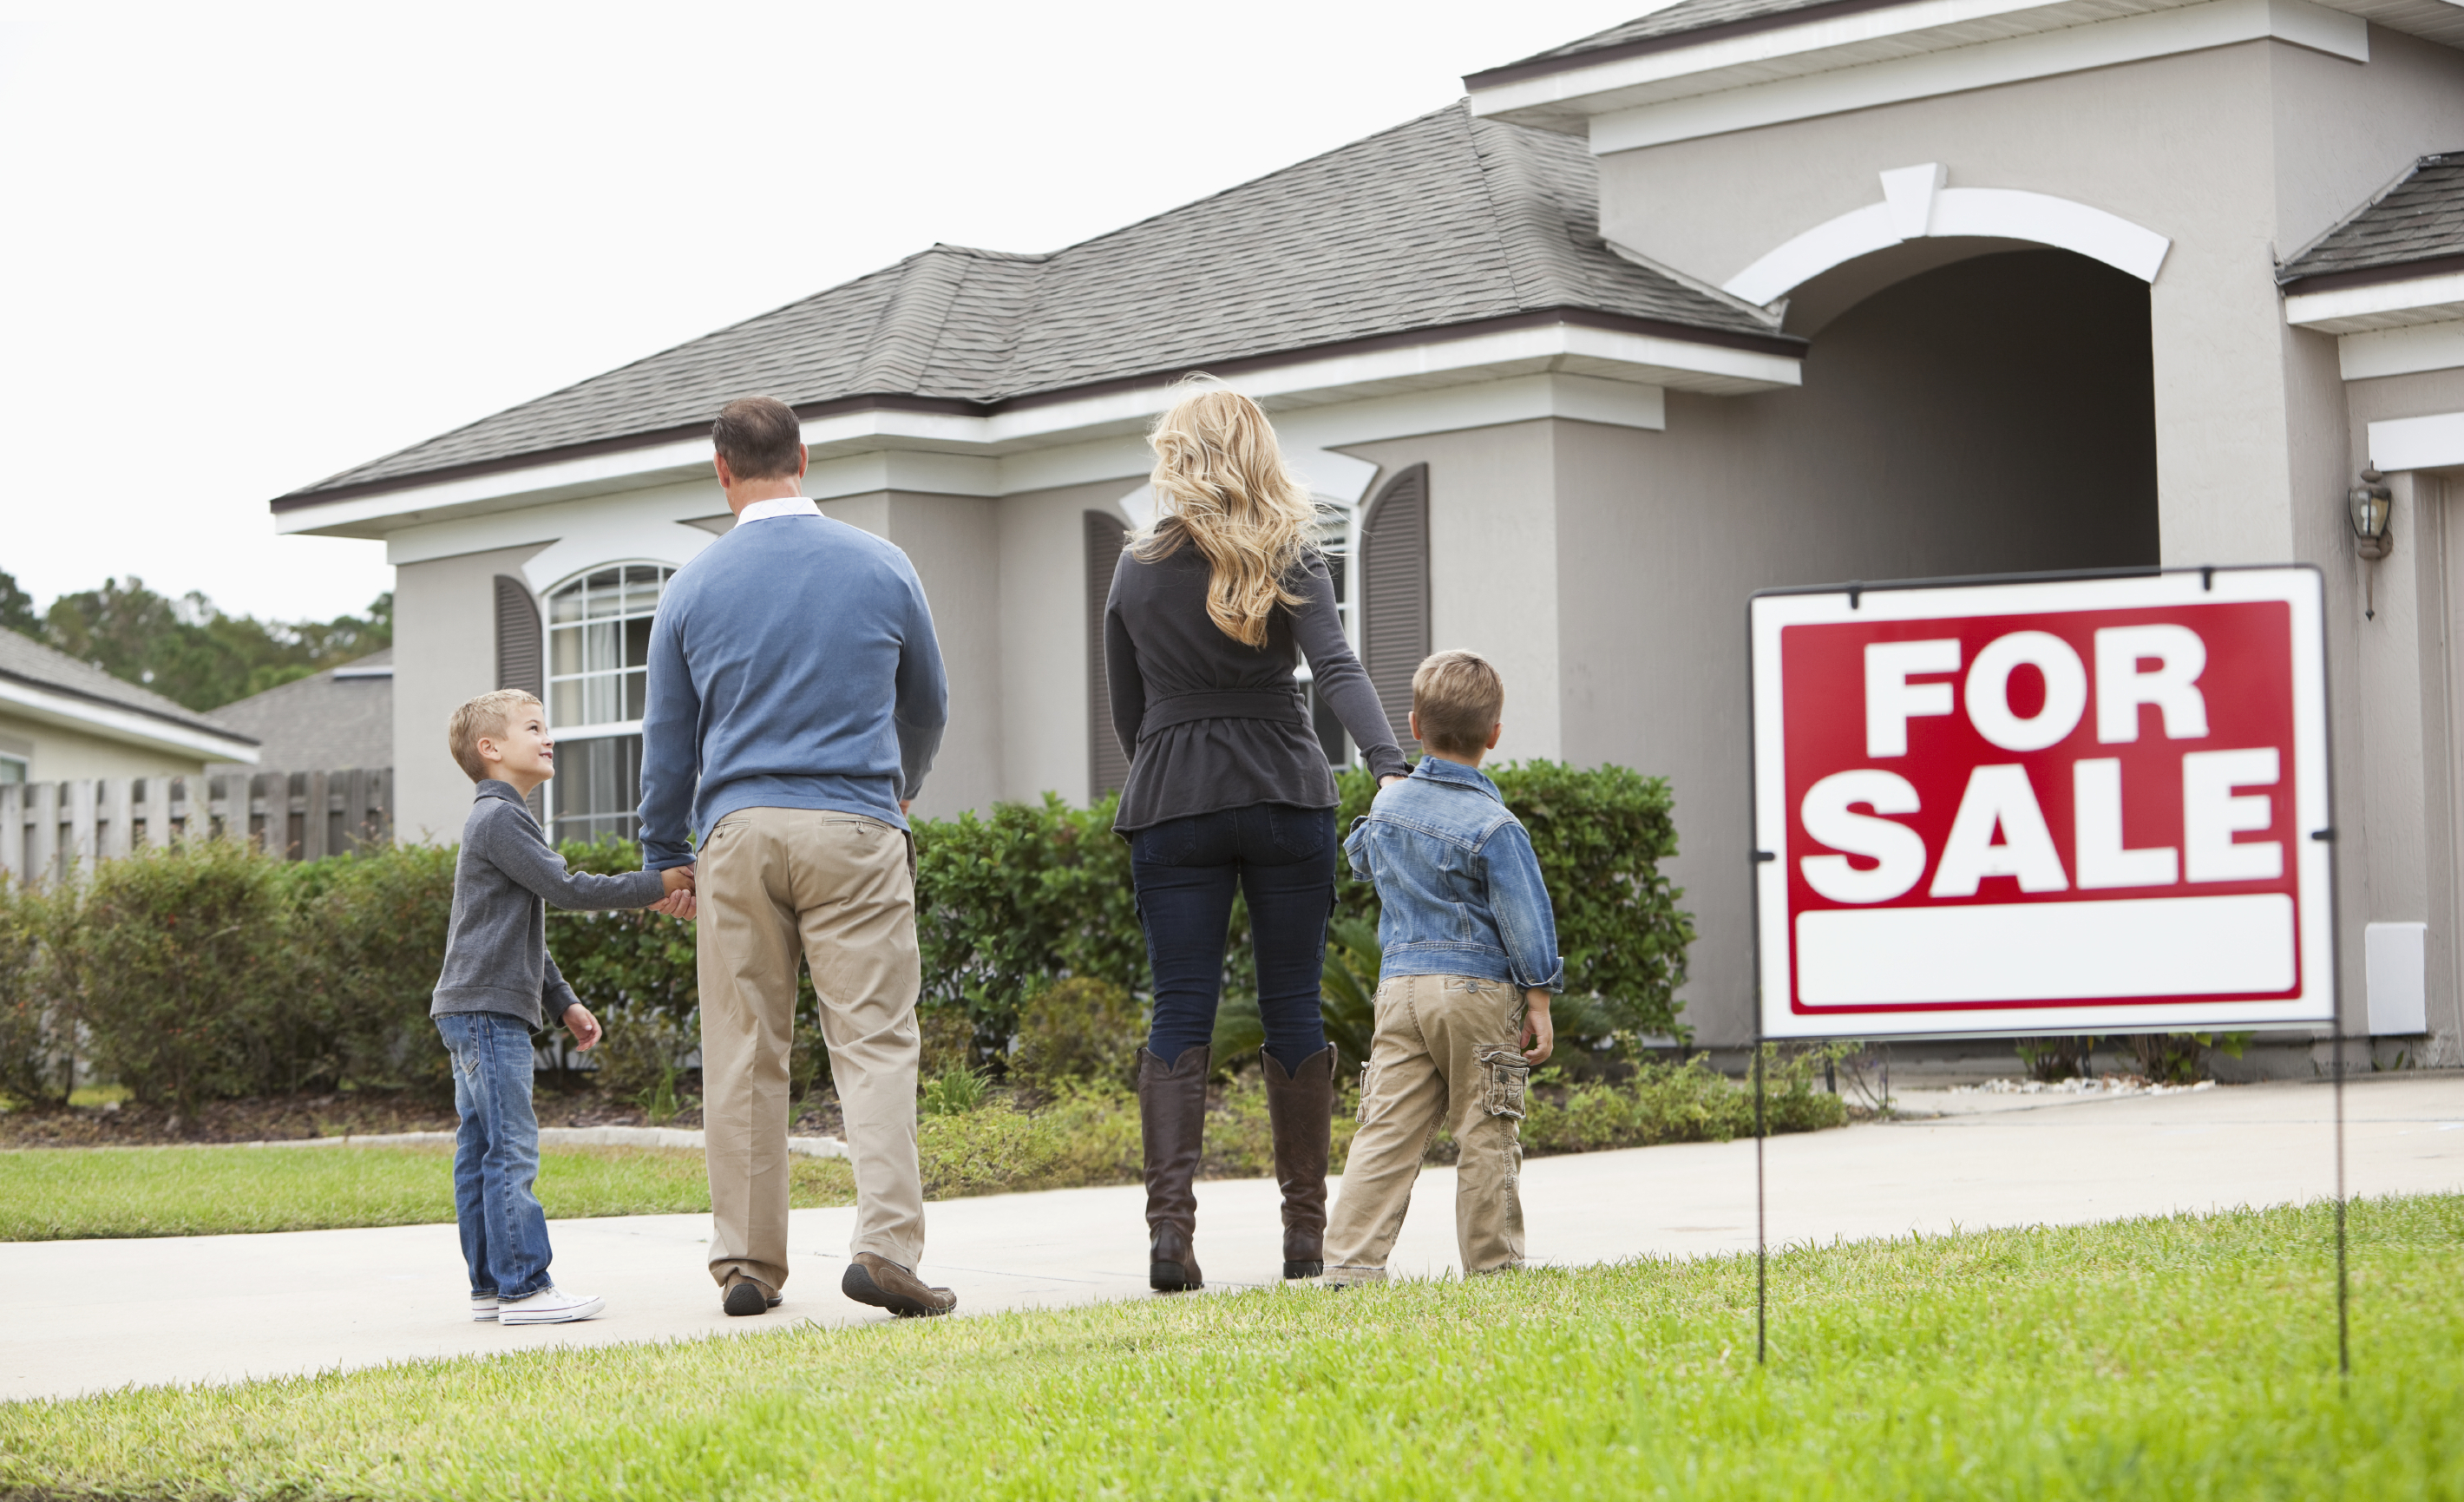 Stock photo of family in front of a home for sale